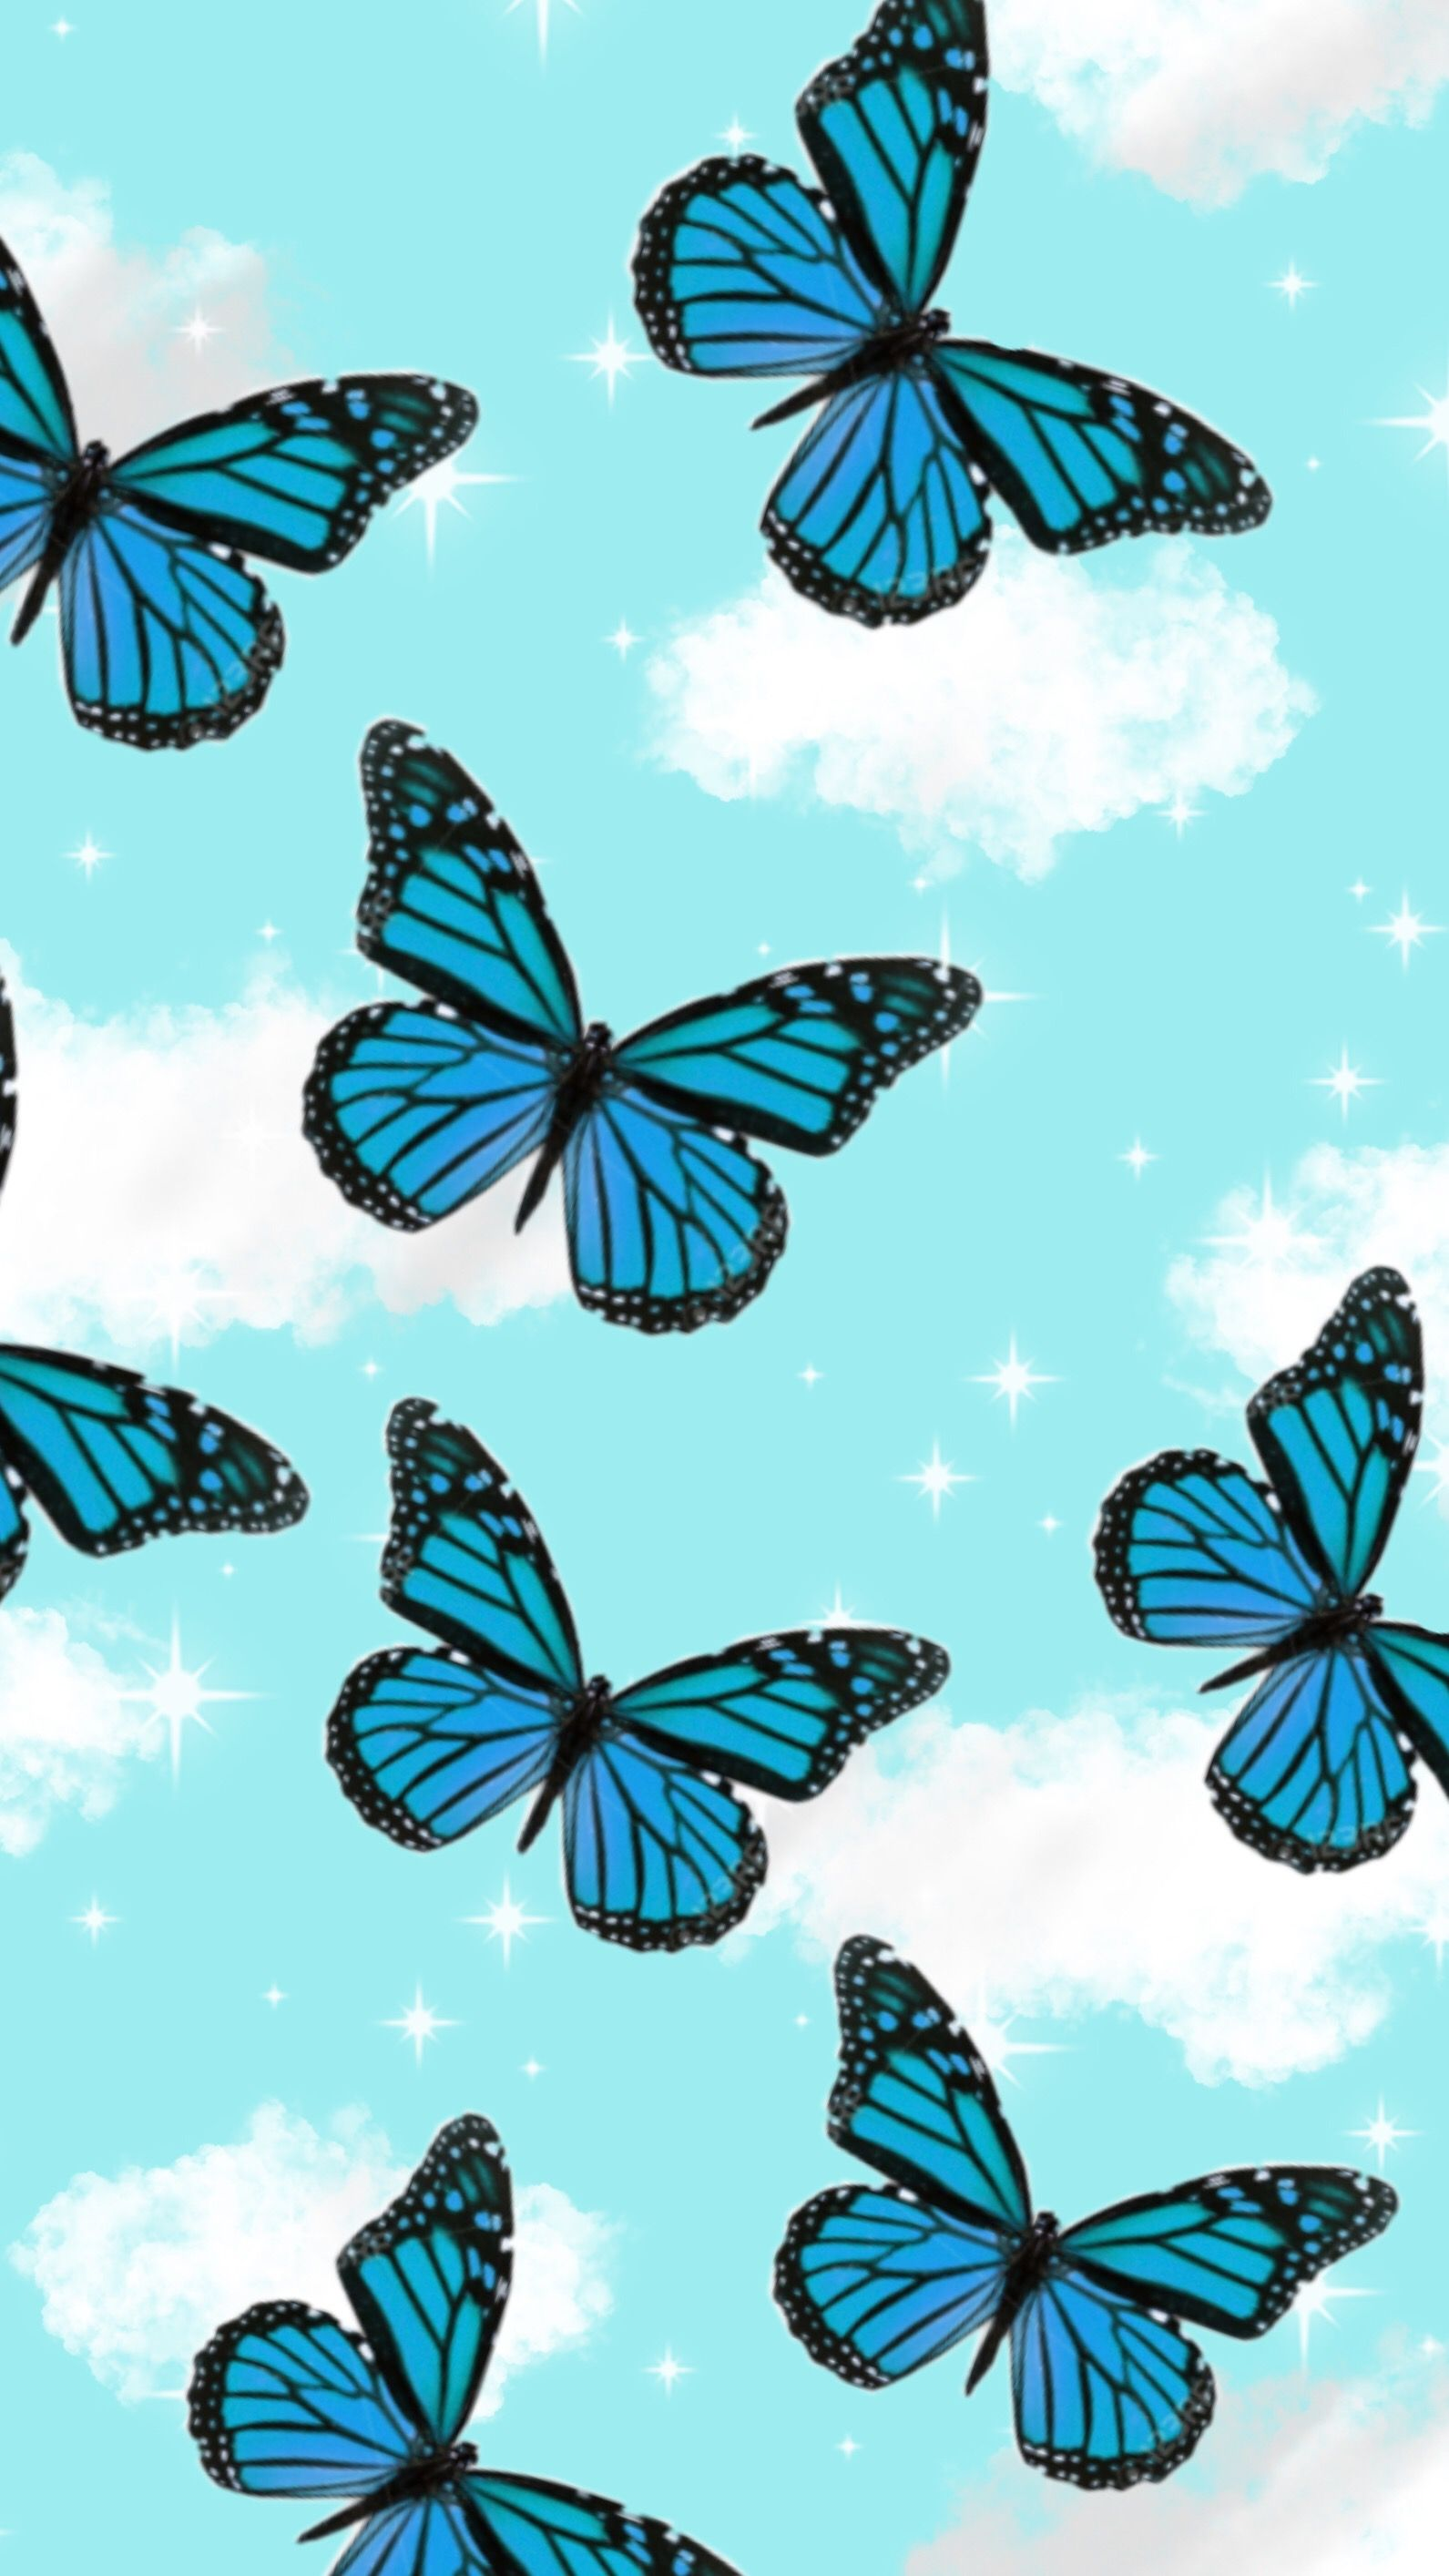 Blue Butterflies In 2020 Cute Patterns Wallpaper Butterfly Wallpaper Iphone Aesthetic Iphone Wallpaper